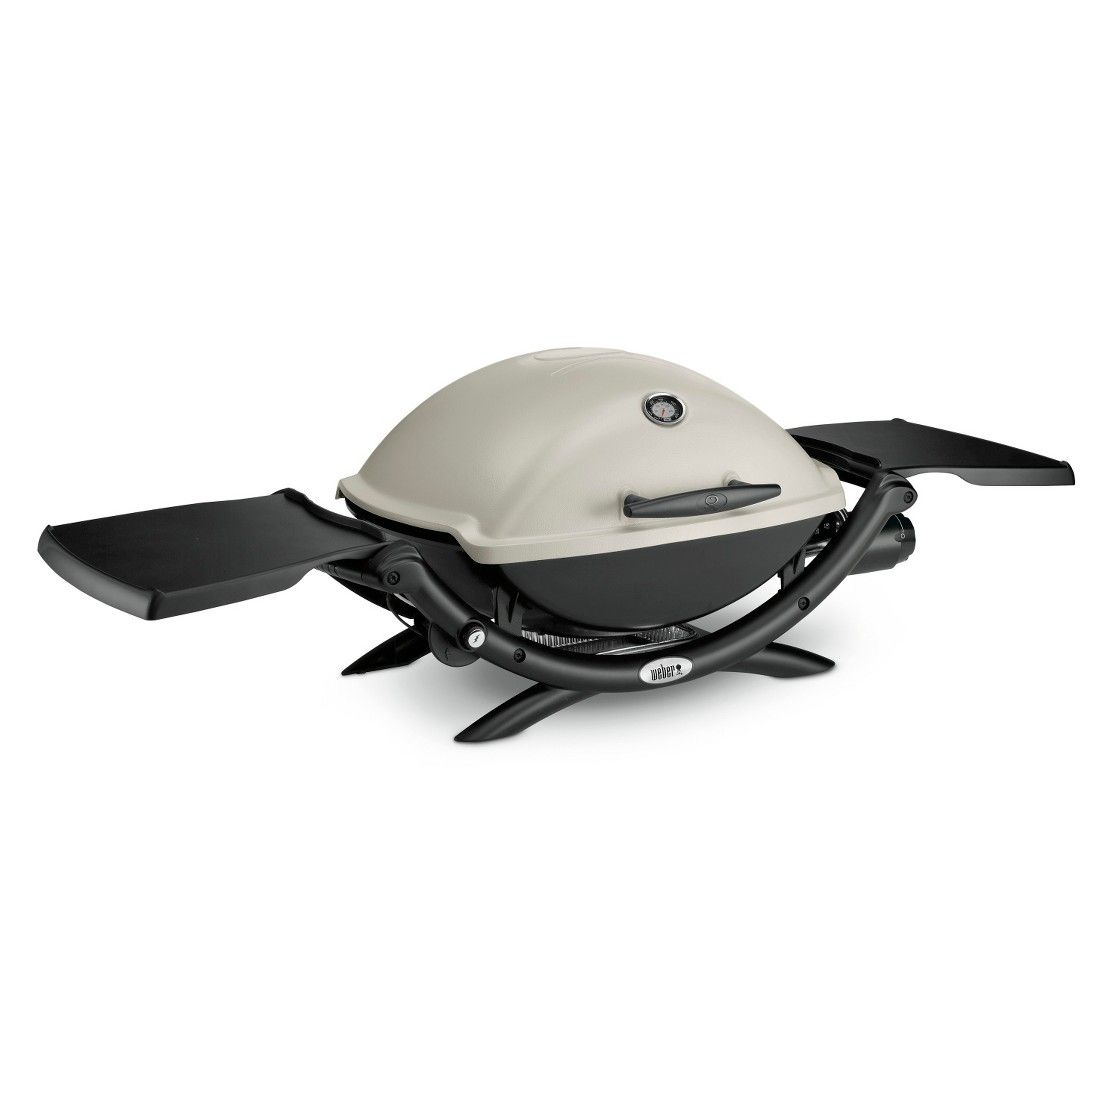 Weber Gas Grill Model 54060001 Silver Gas Grill Portable Gas